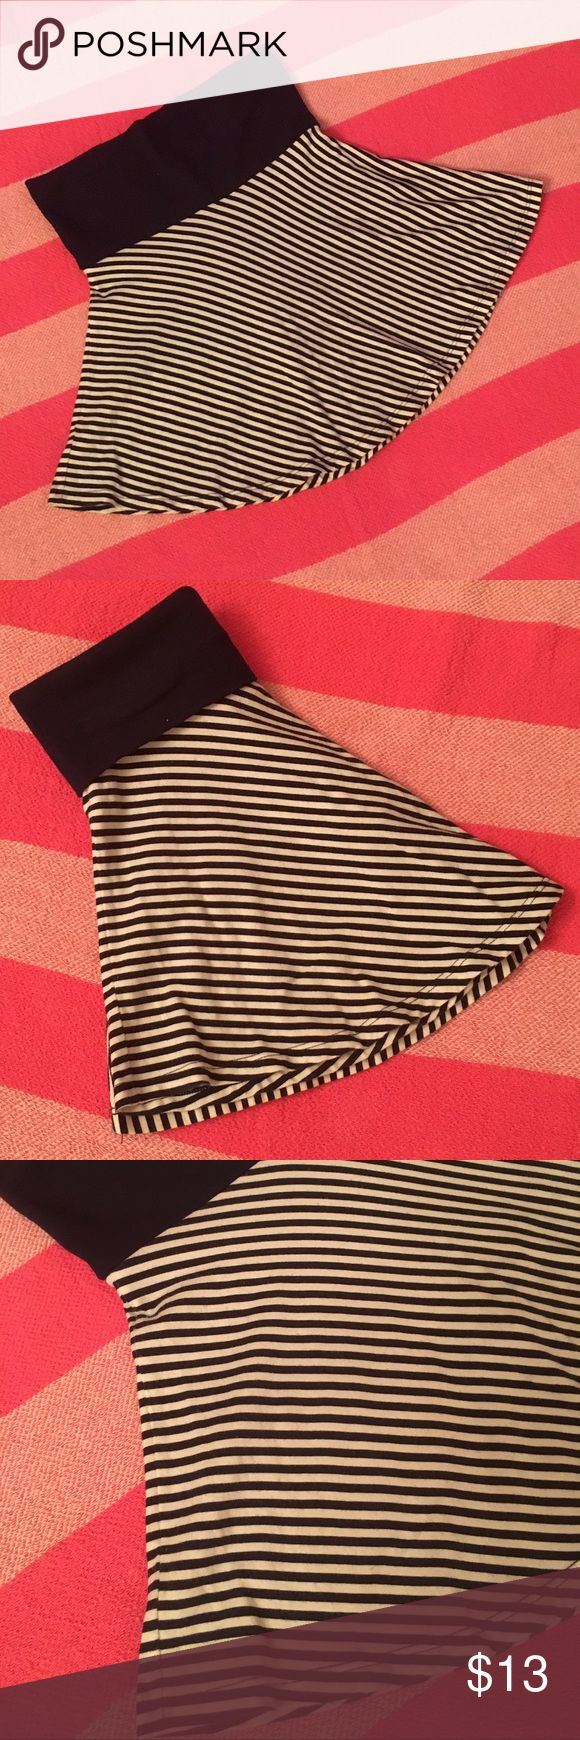 Flowers by Zoe girl's skirt 🌺 Stripped blue girls mini skirt, in good condition 🌺 Flowers by Zoe Bottoms Skirts